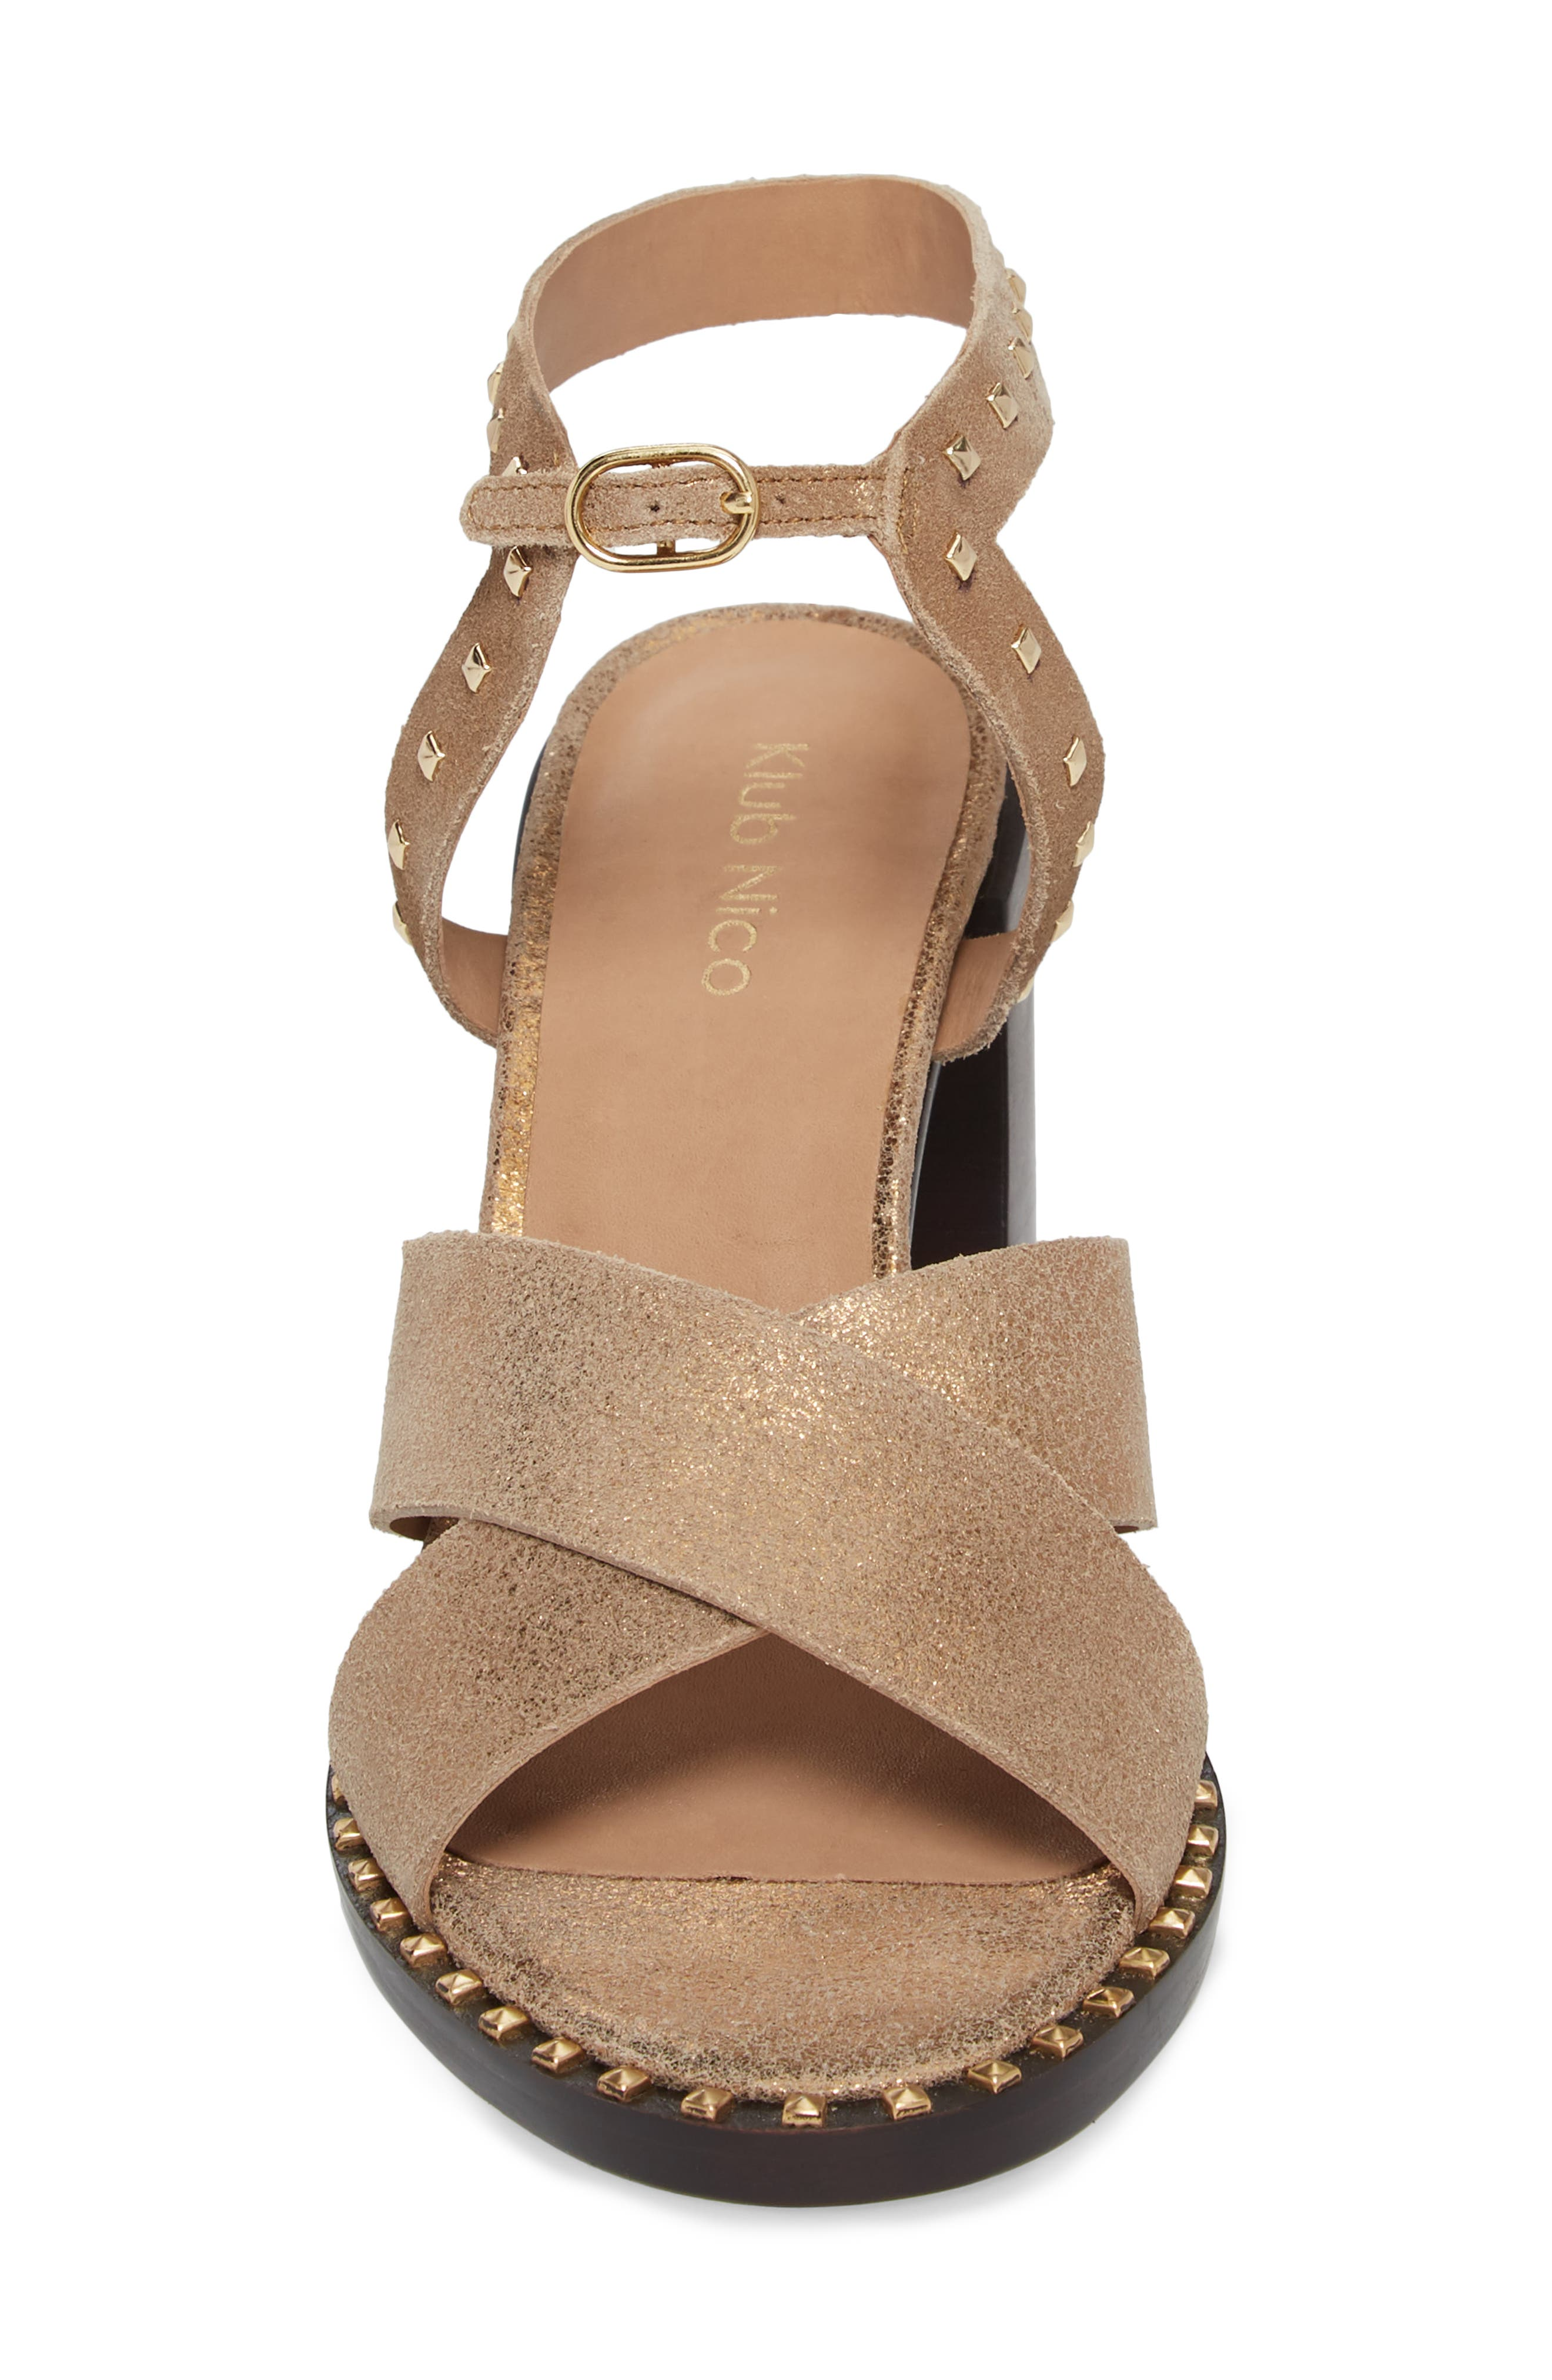 Tabia Sandal,                             Alternate thumbnail 4, color,                             Bronze Suede